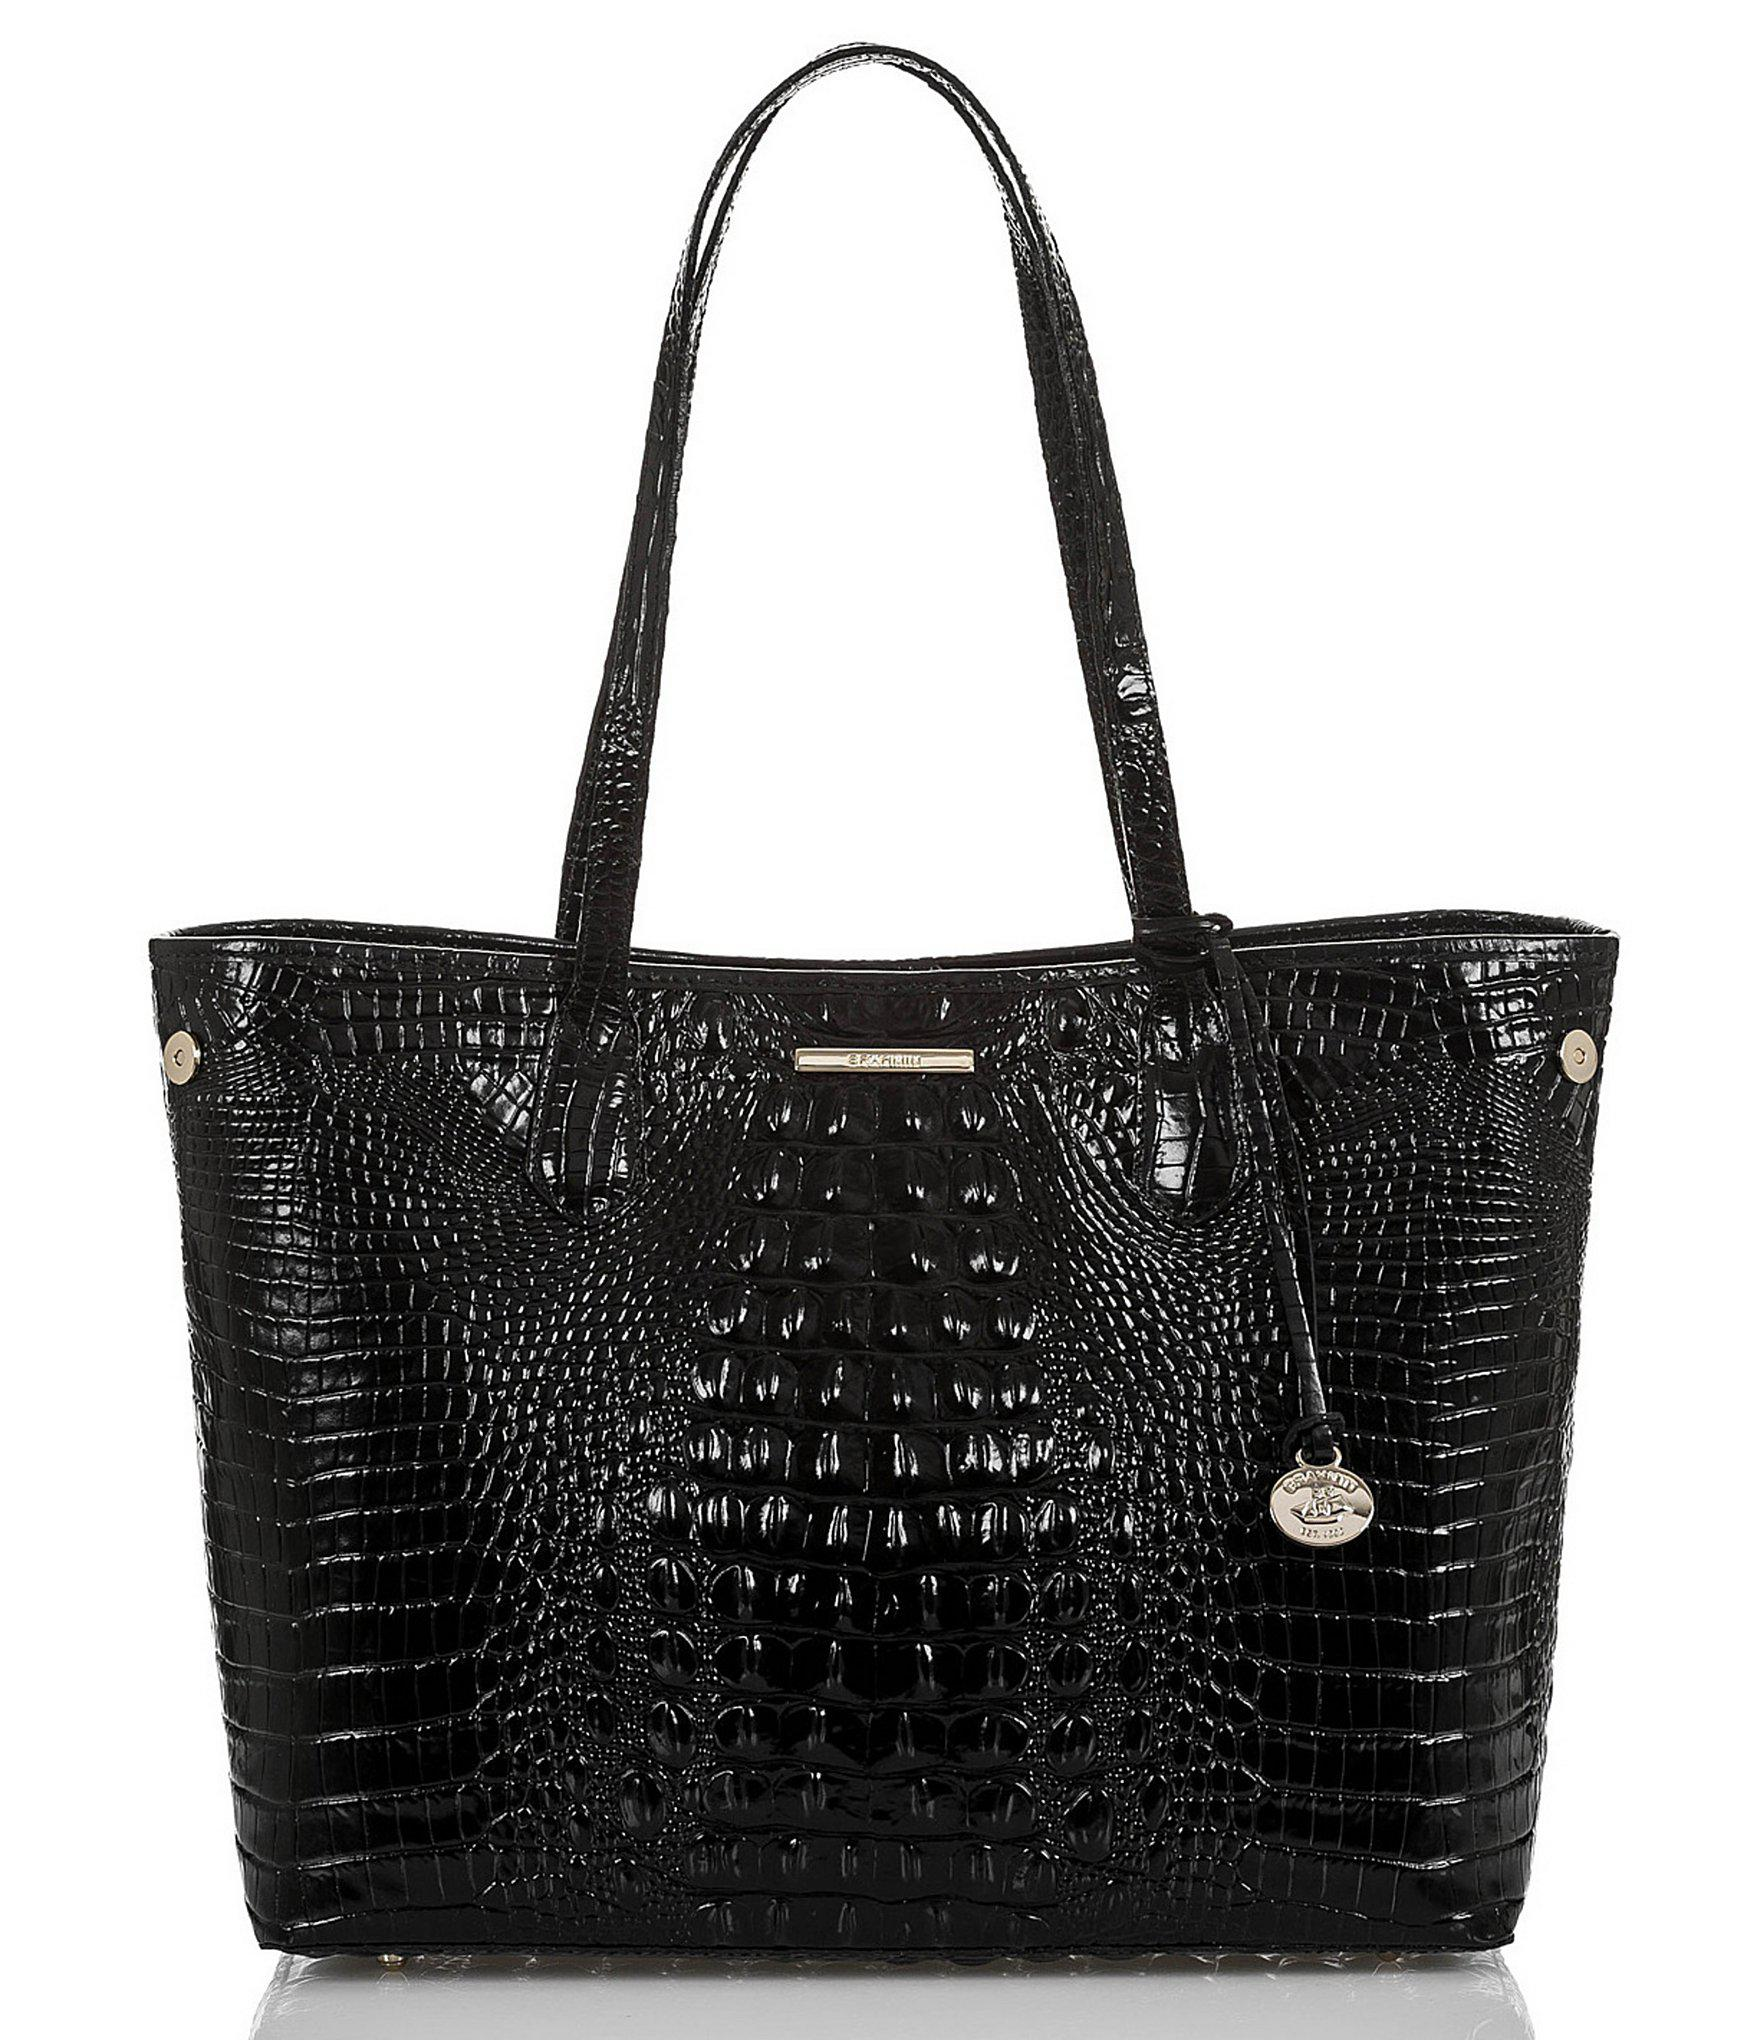 9f4e7345c8edf Lyst - Brahmin Melbourne Collection Medium Julian Tote in Black